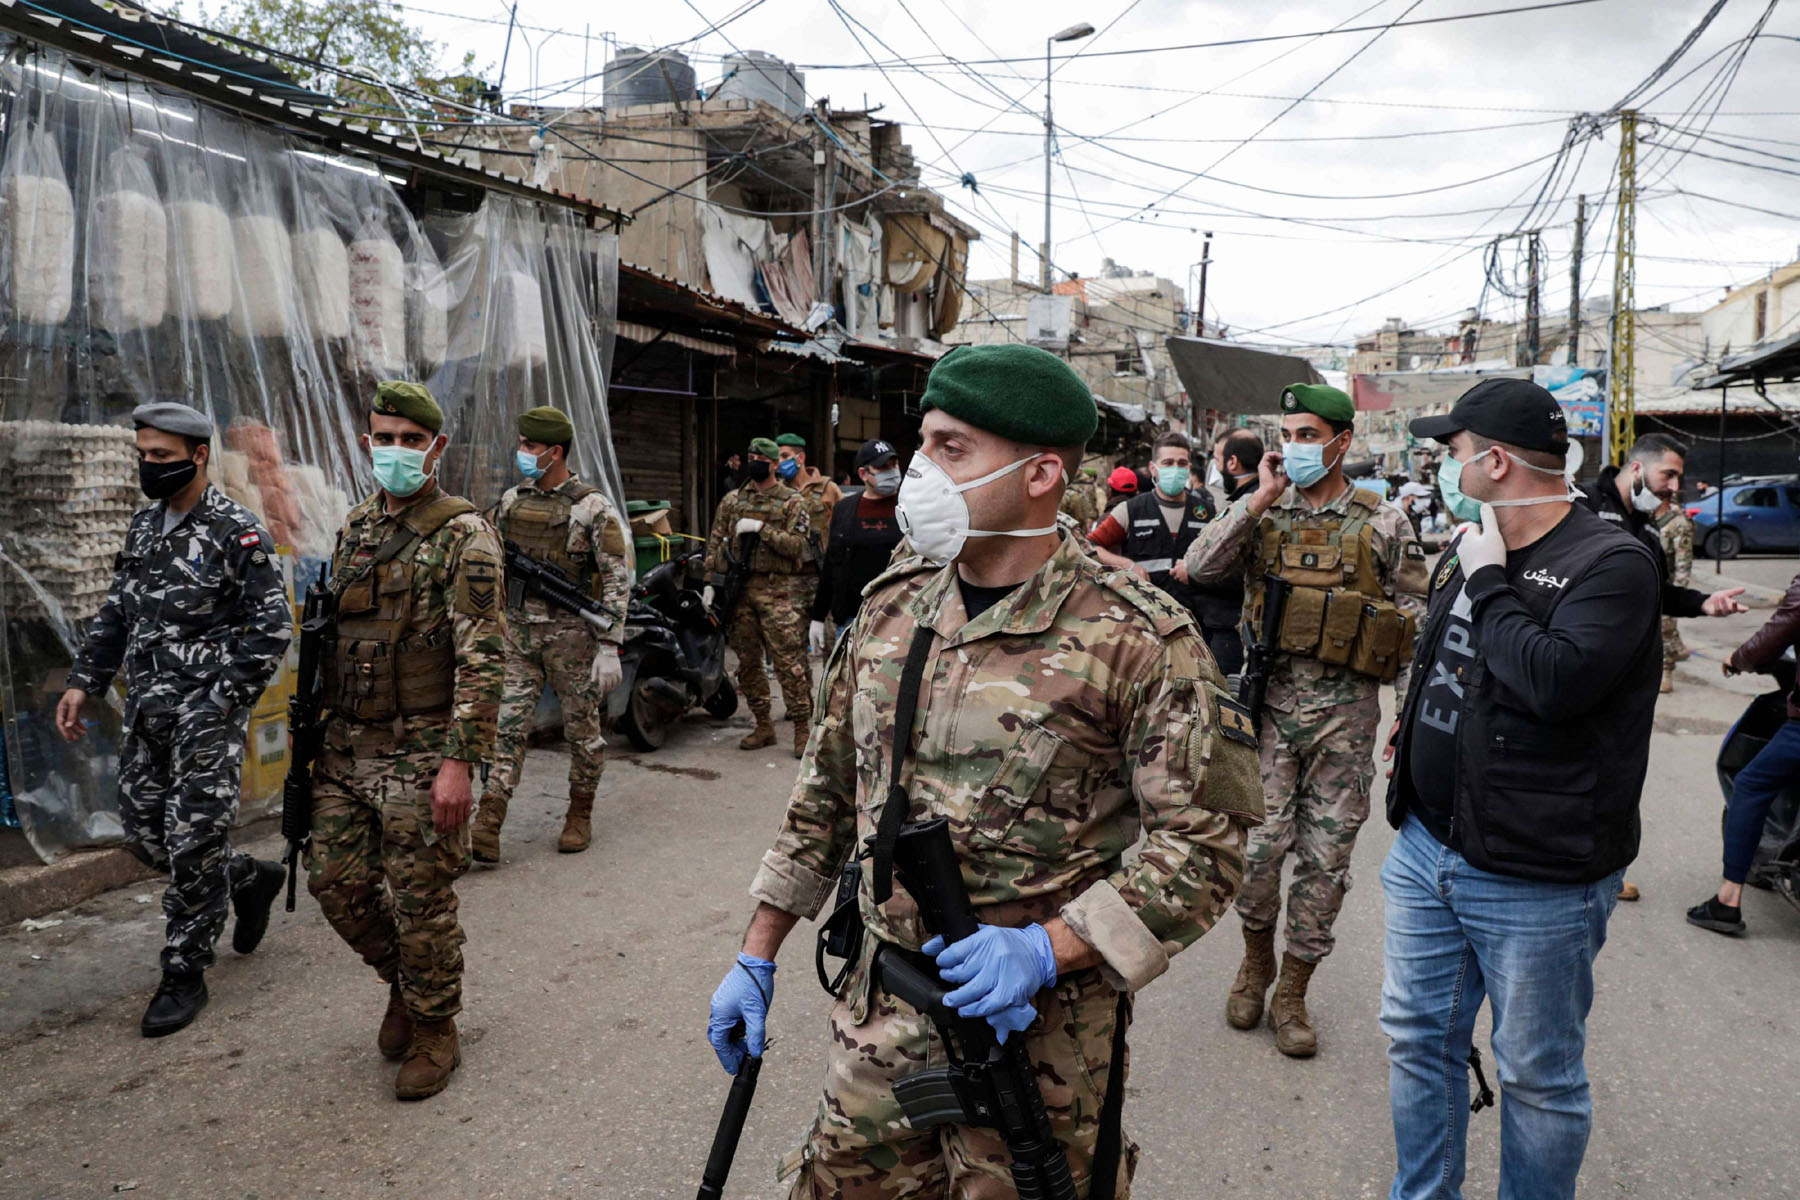 Lebanese Army soldiers patrol in the market of the Palestinian refugee camp of Sabra, south of Beirut. (AFP)